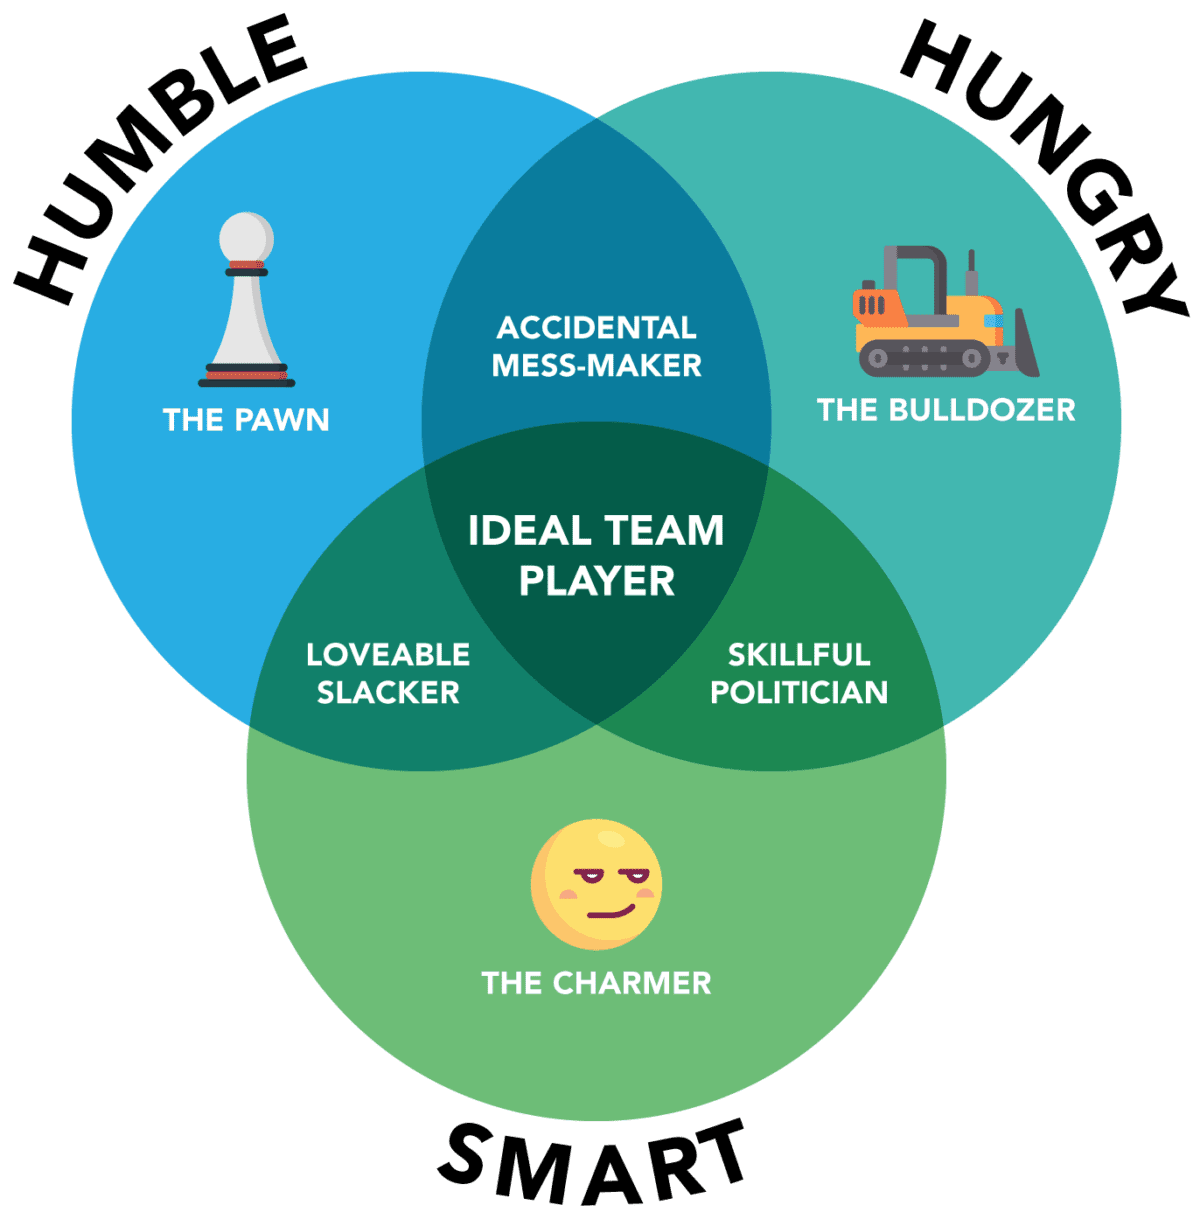 Are You An Ideal Team Player?